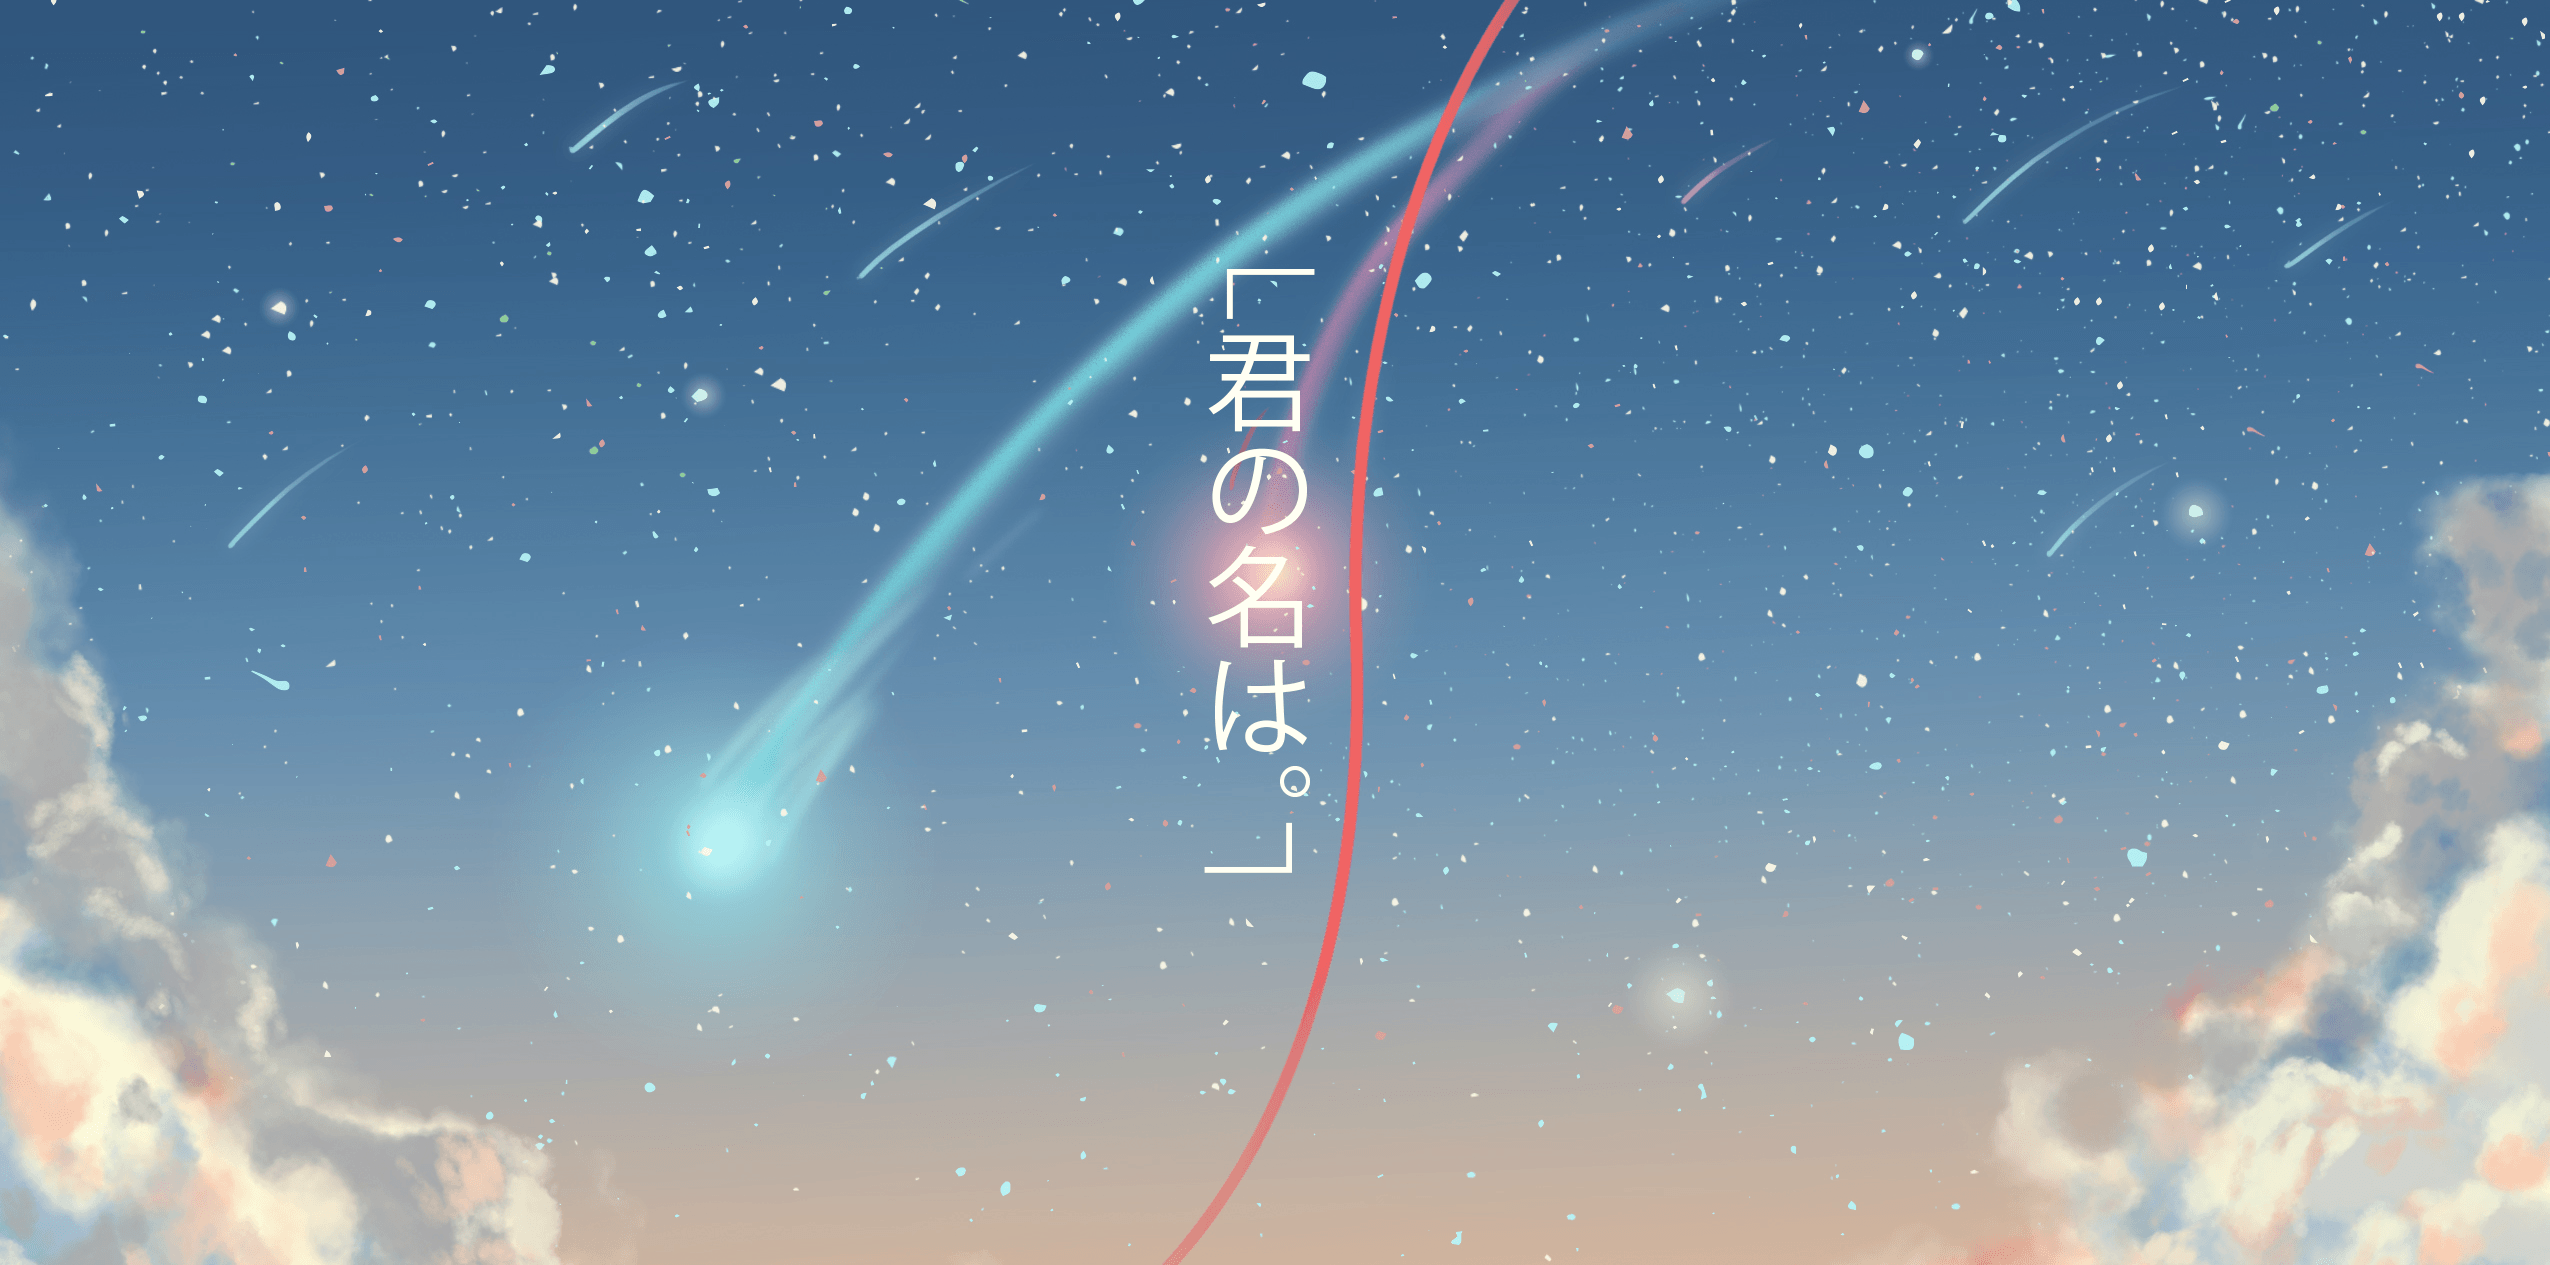 Your Name Wallpapers Top Free Your Name Backgrounds Wallpaperaccess